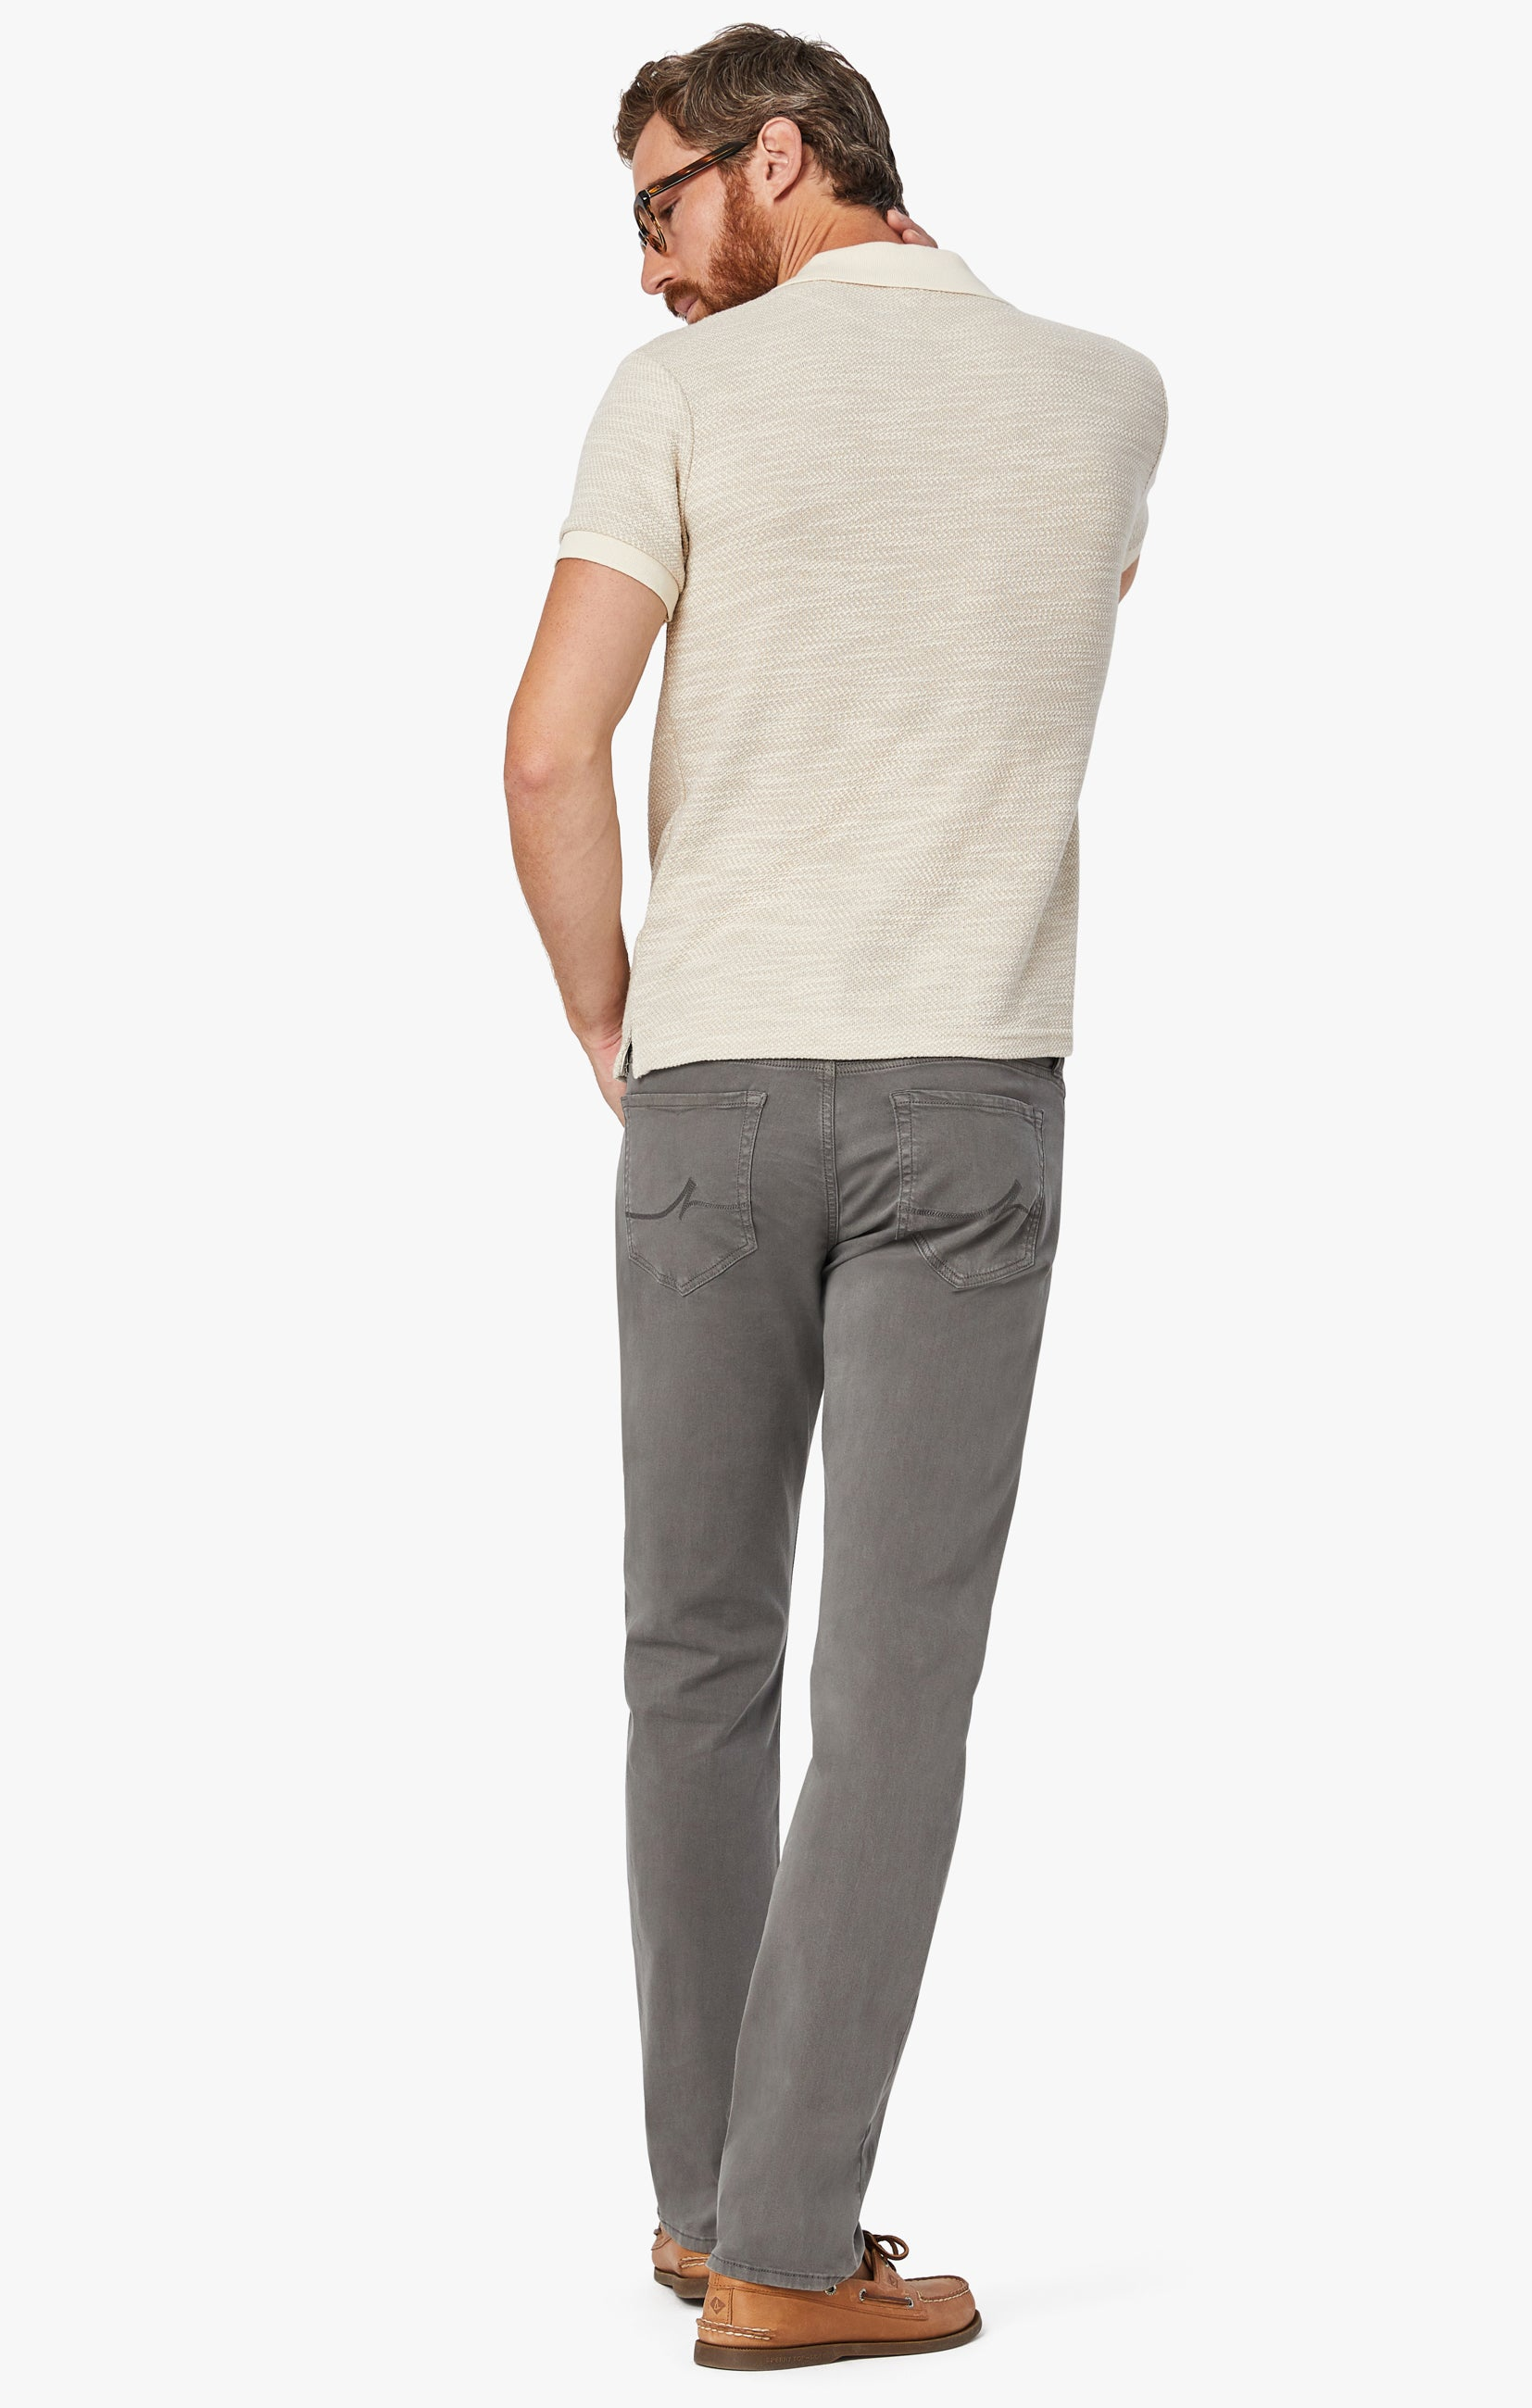 Charisma Relaxed Straight Pants in Dark Stone Twill Image 3